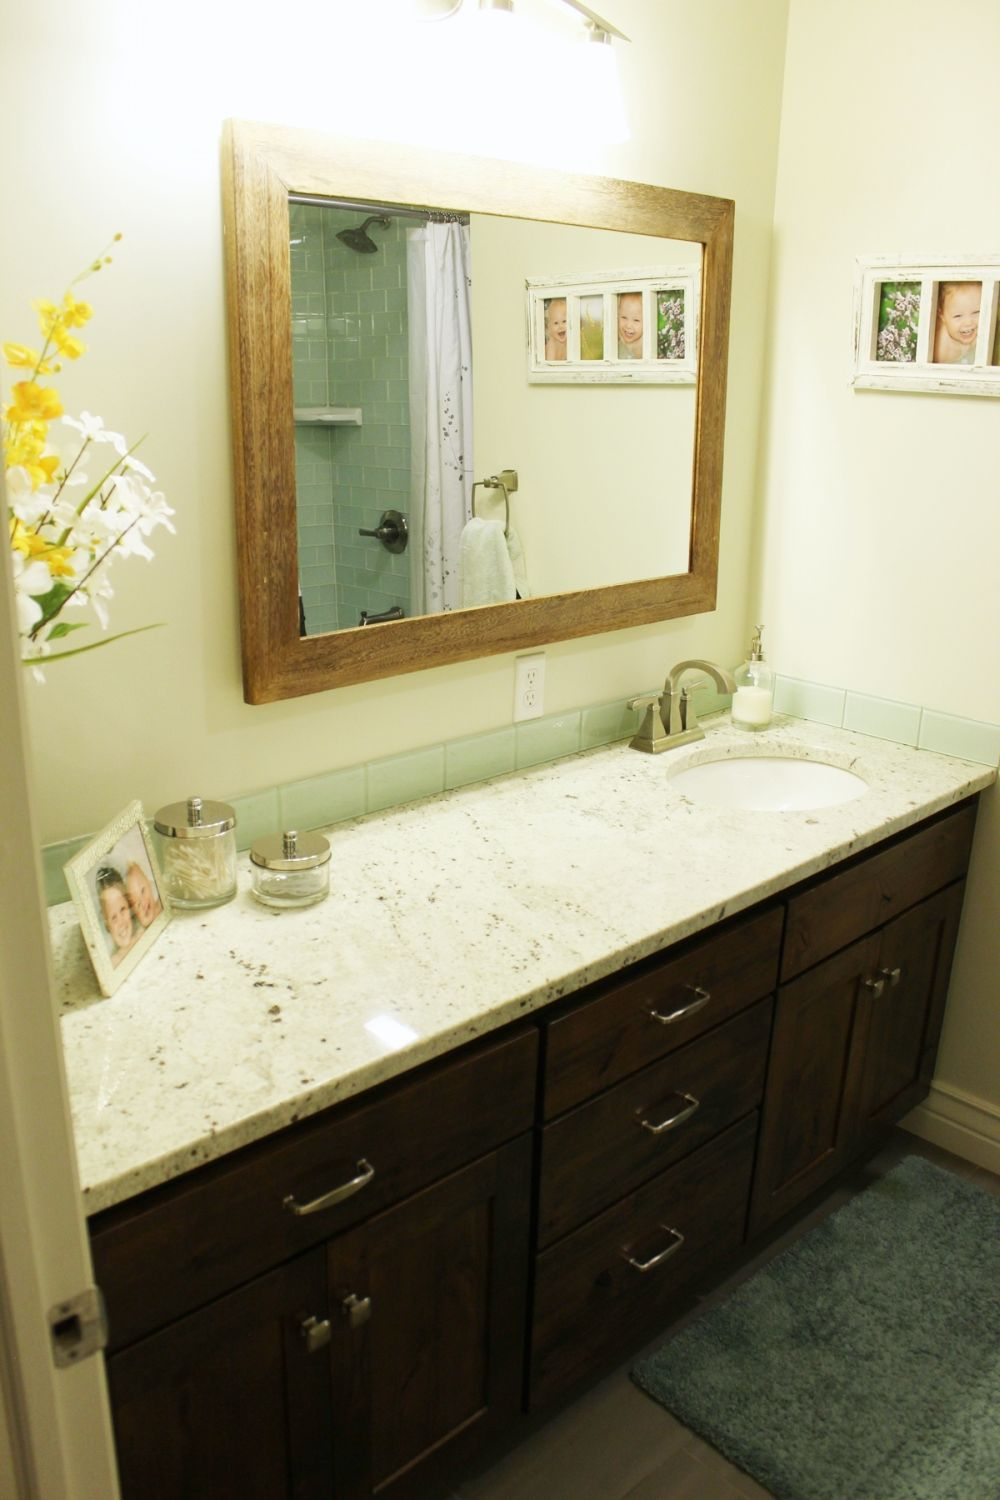 Large mirror for bathroom - rectangular